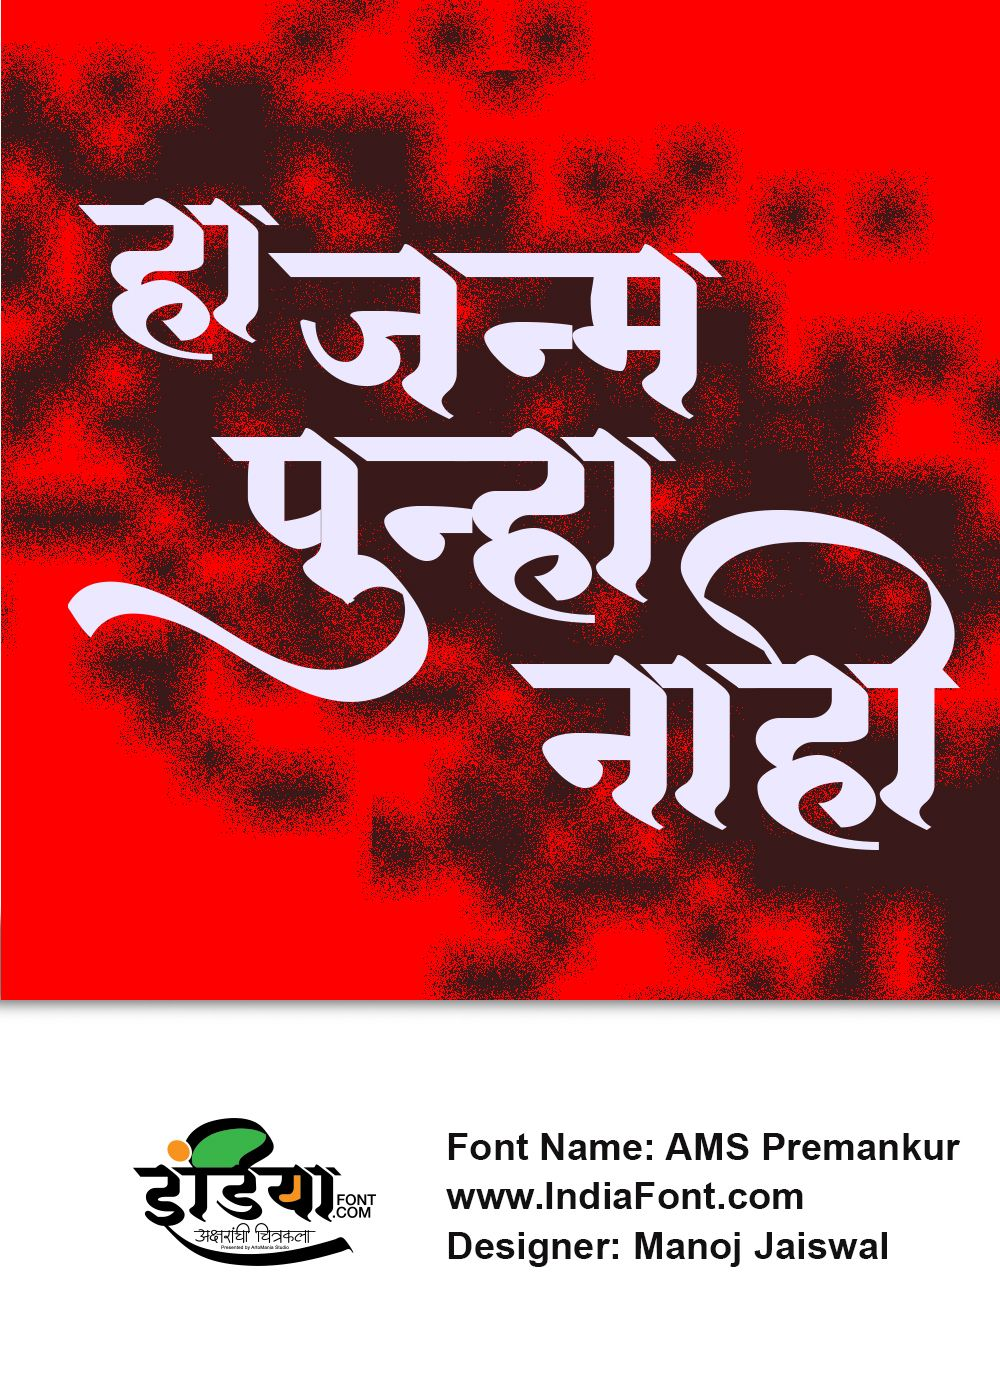 Indiafont Gallery Marahi Hindi Calligraphy Fonts Software Indiafont Hindi Calligraphy Hindi Calligraphy Fonts Calligraphy Fonts